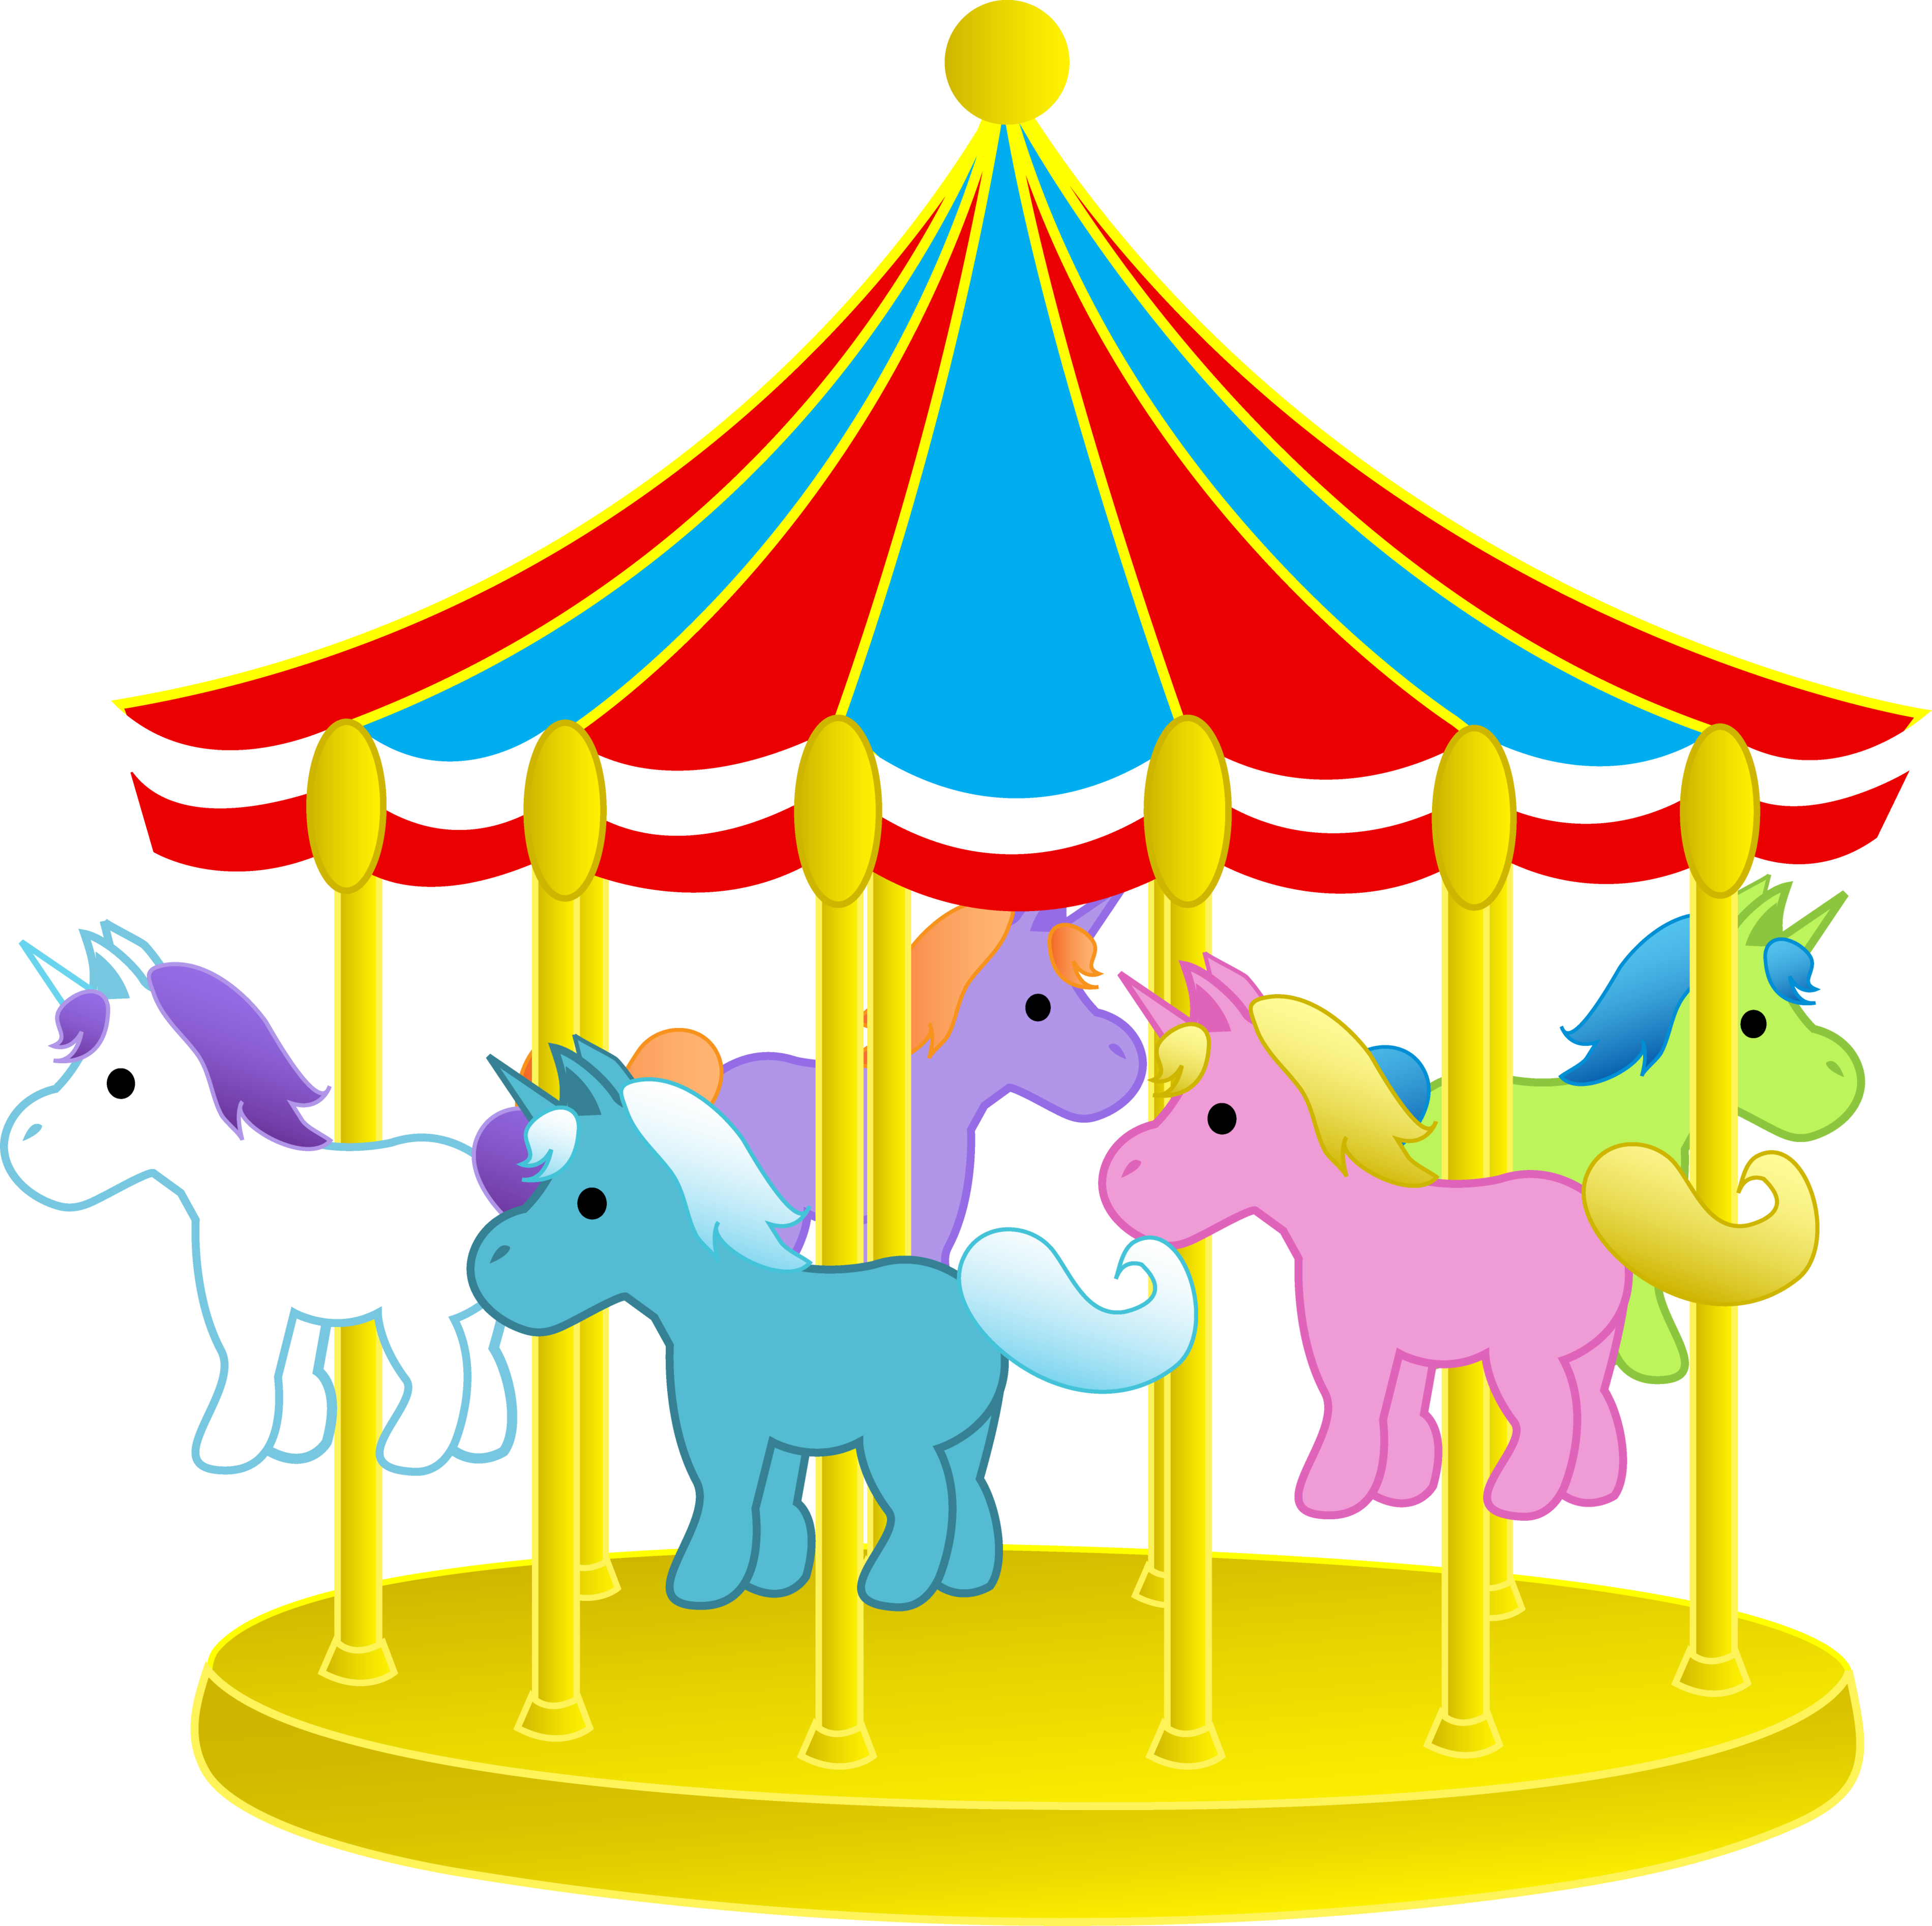 Amusement Park clipart Amusement park clipart WikiClipArt collection